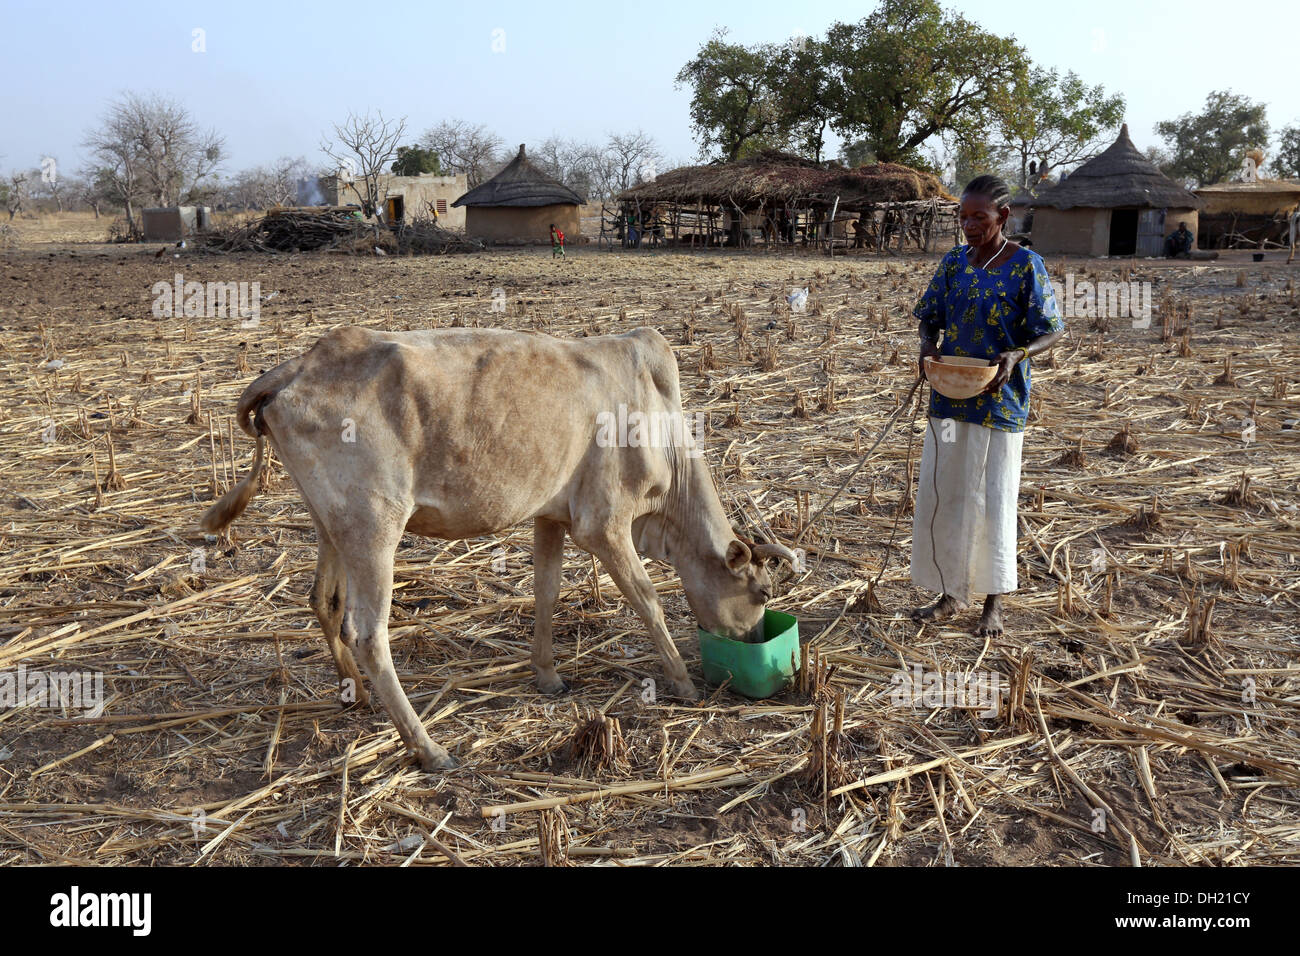 Woman in northern Burkina Faso feeding cow - Stock Image